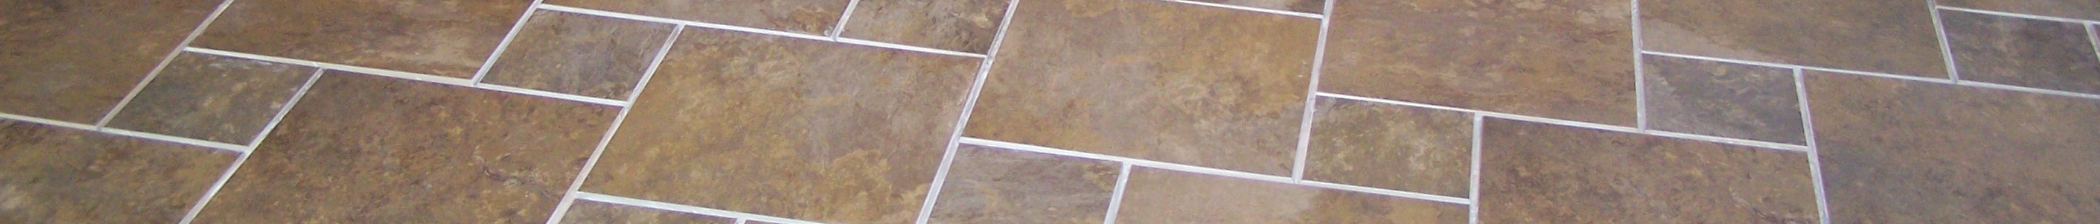 chicago tile flooring